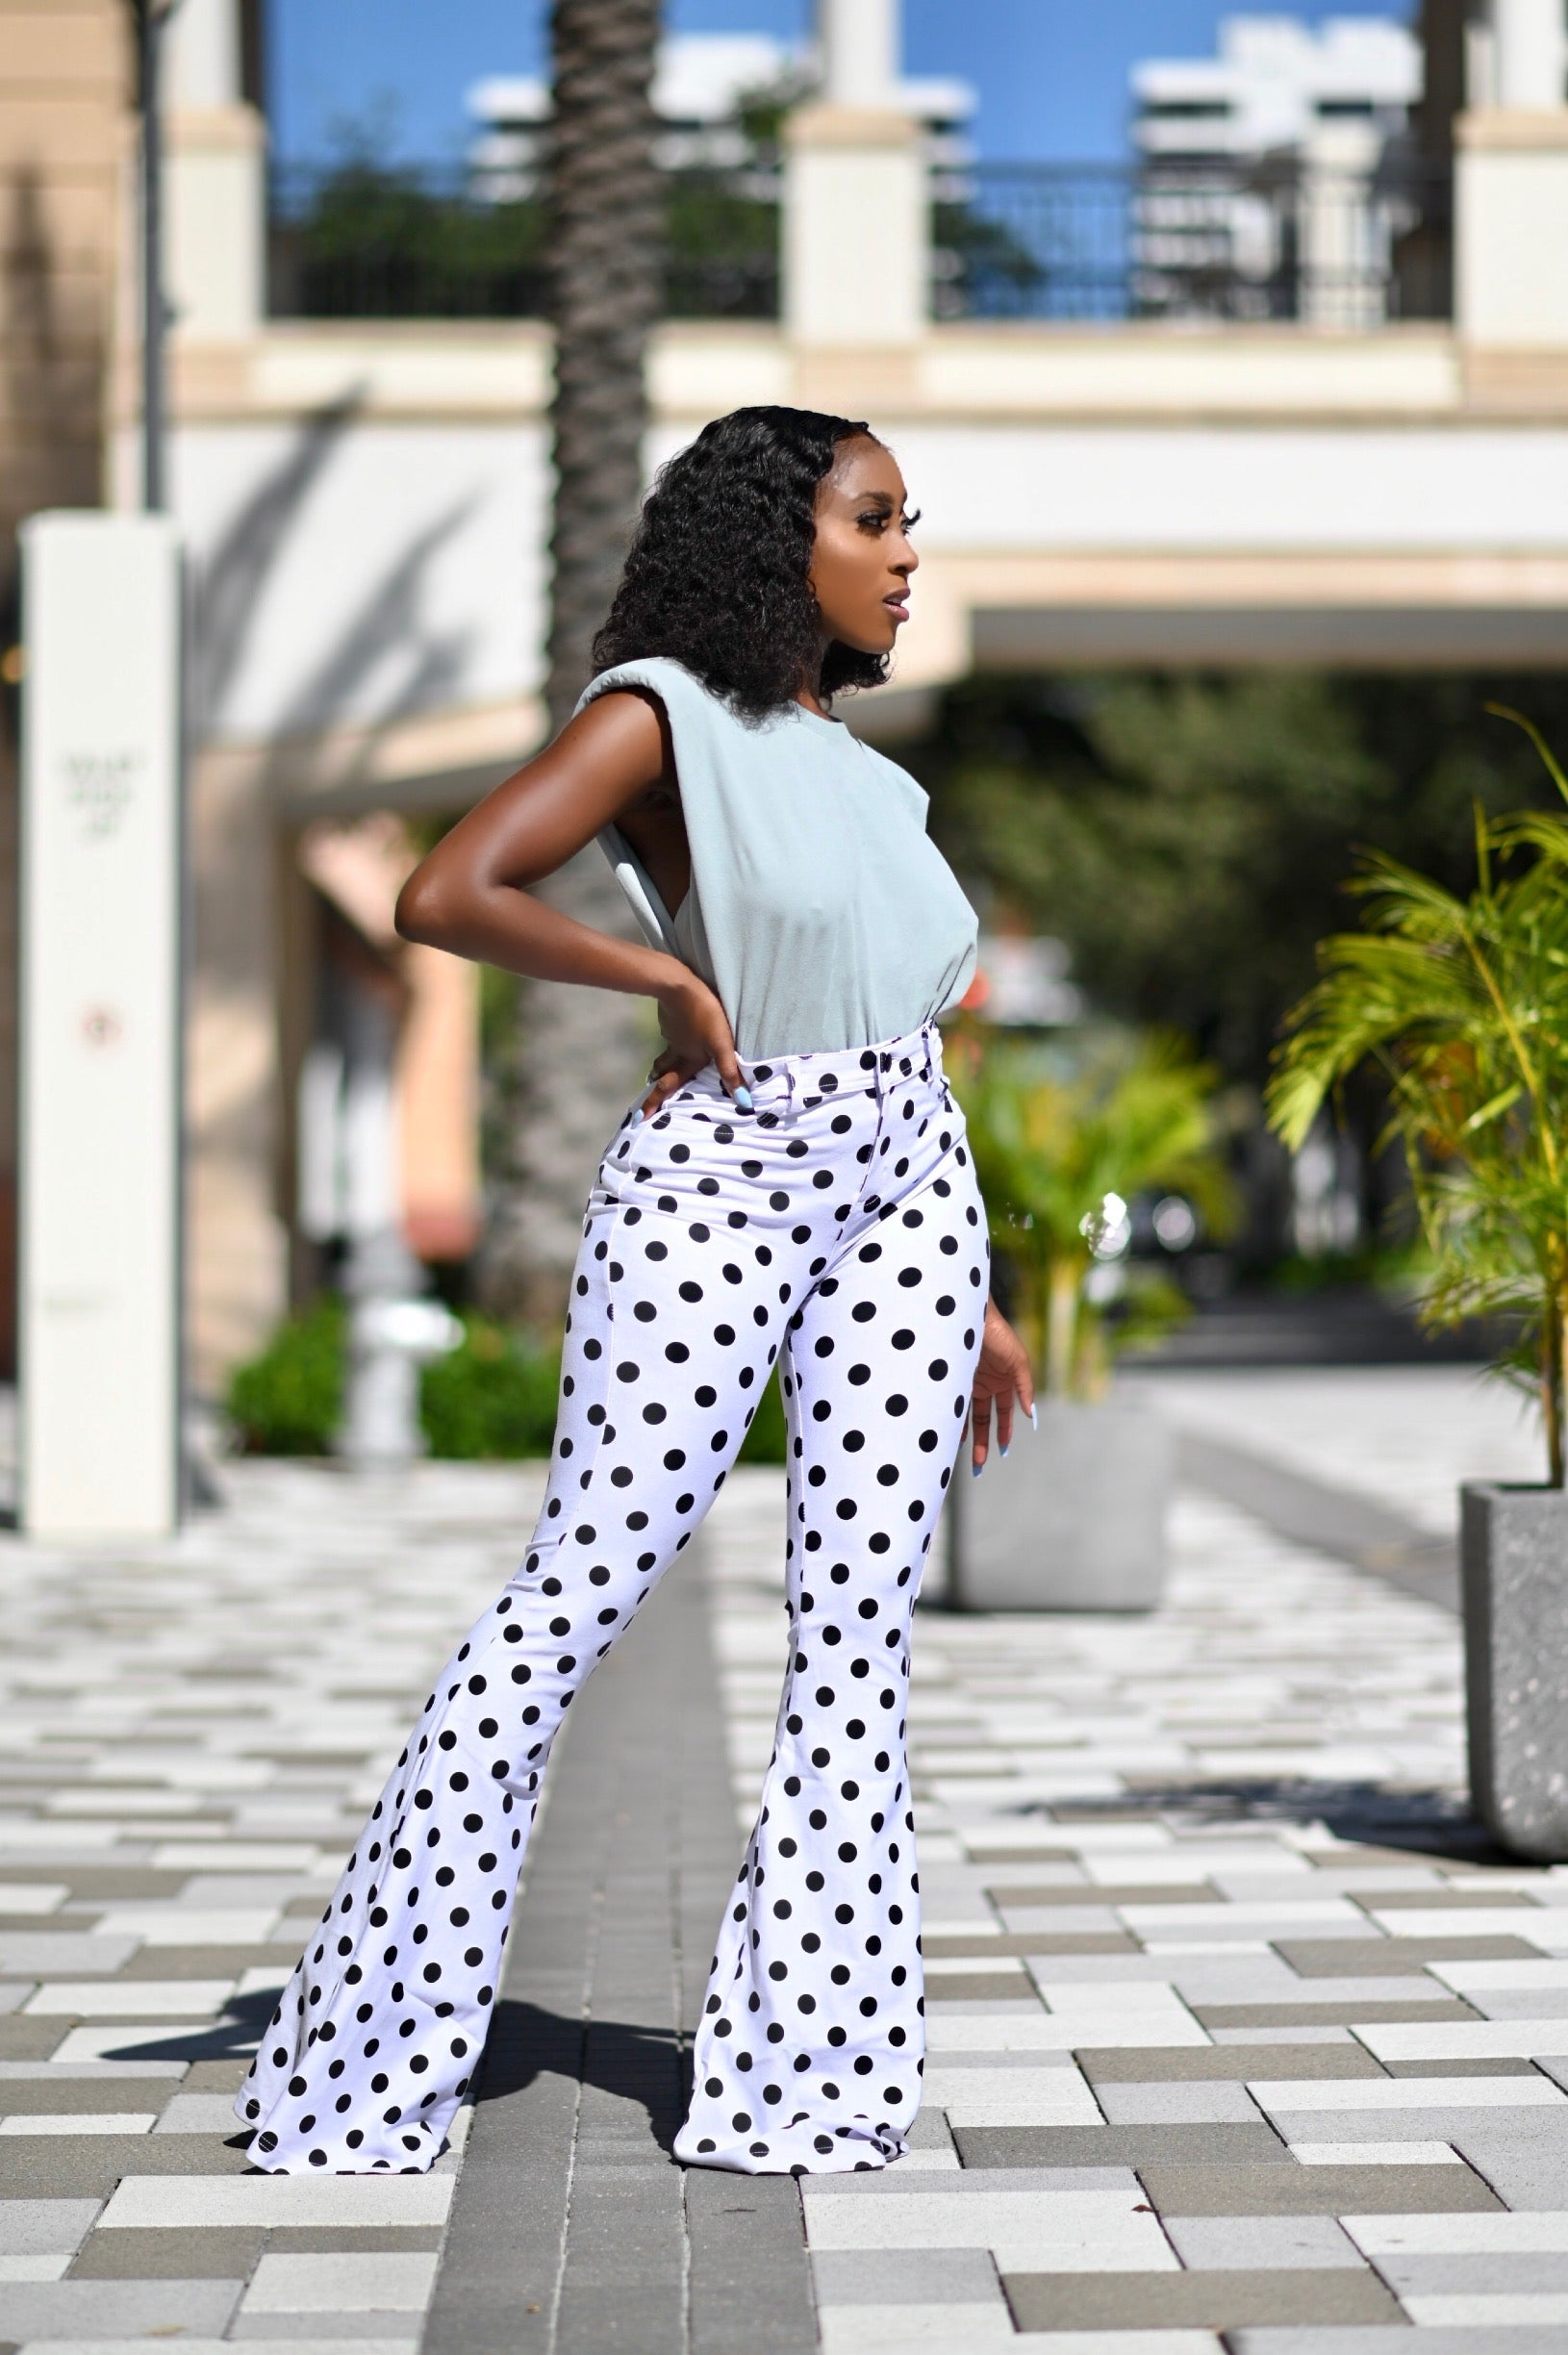 TOOK YOUR SPOT | HIGH WAIST PANTS